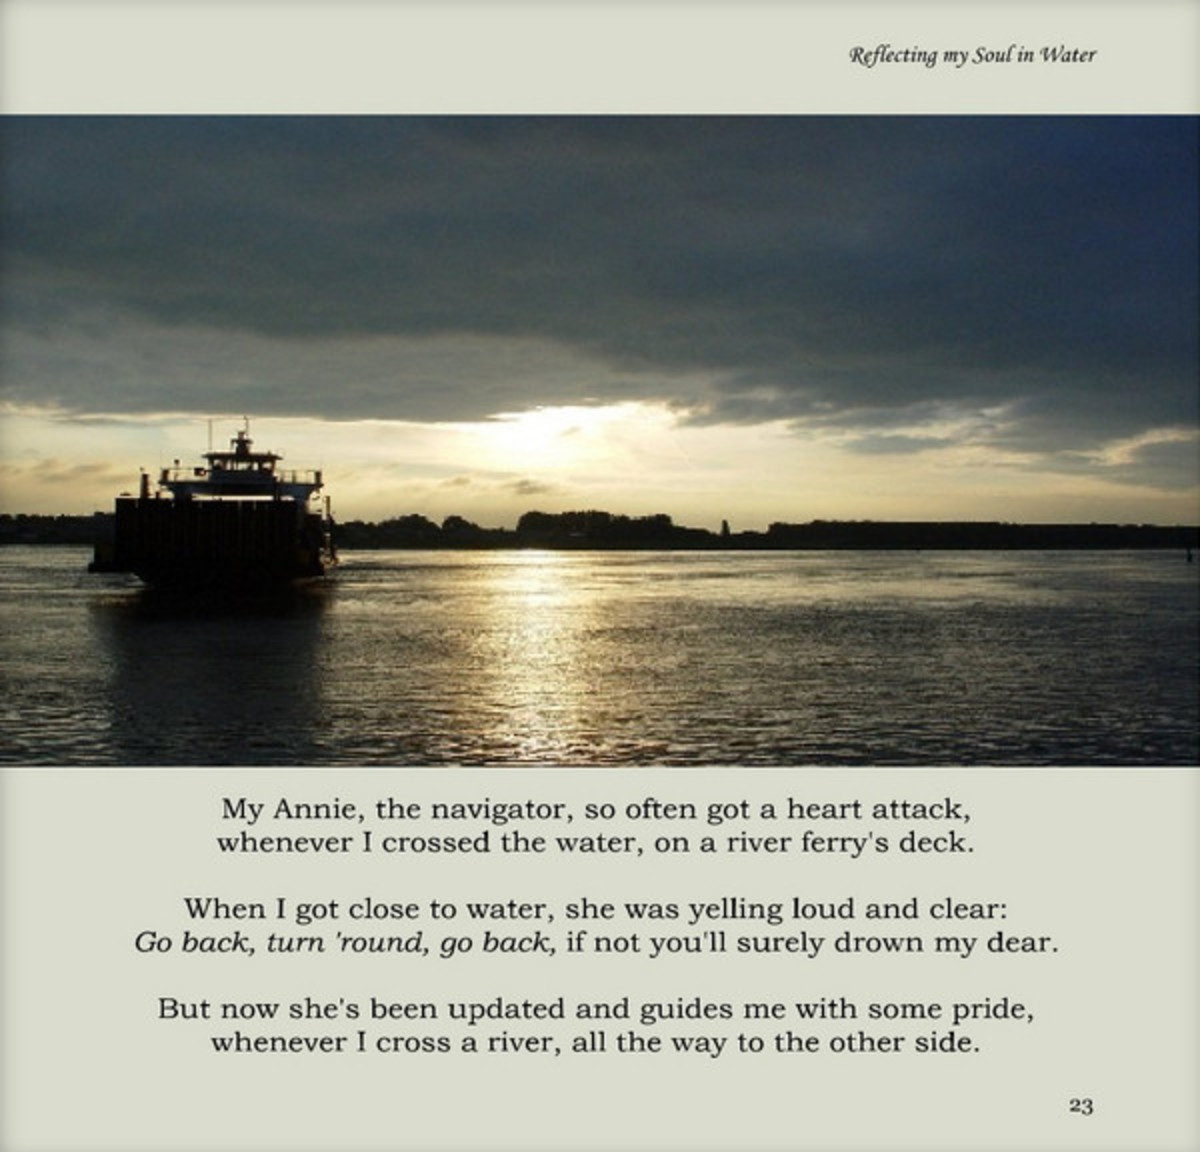 Rhyming Images - page from my book 'Reflecting my soul in water'.